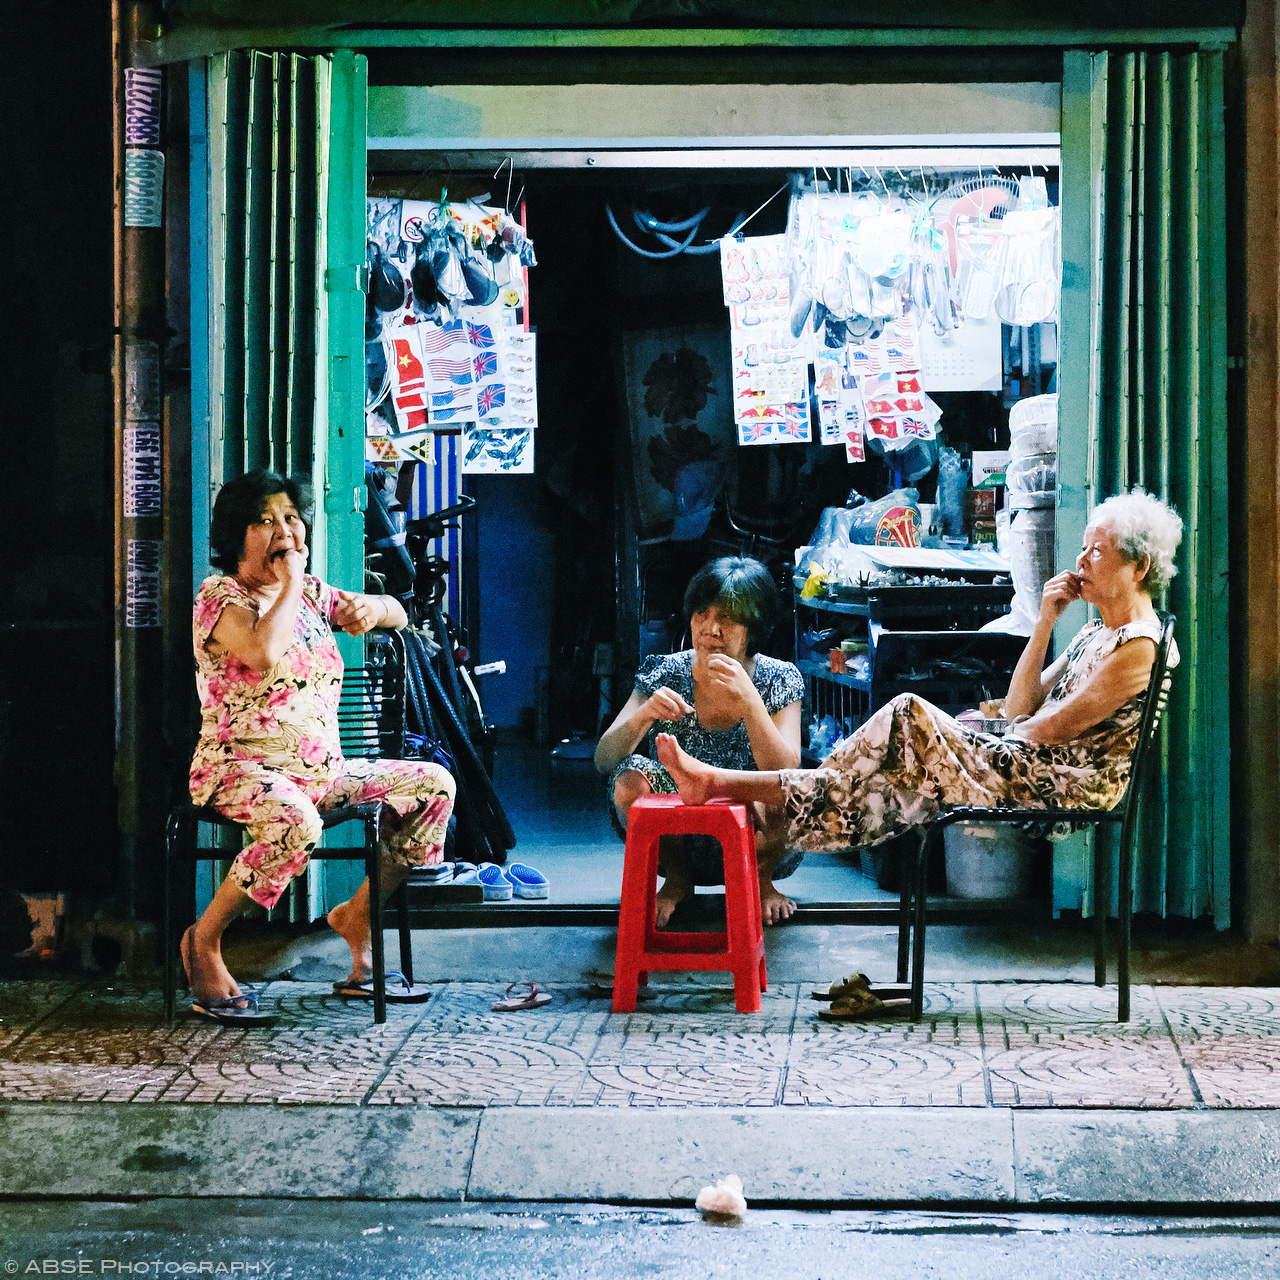 ho-chi-minh-vietnam-candide-urban-portrait-women-old-shop